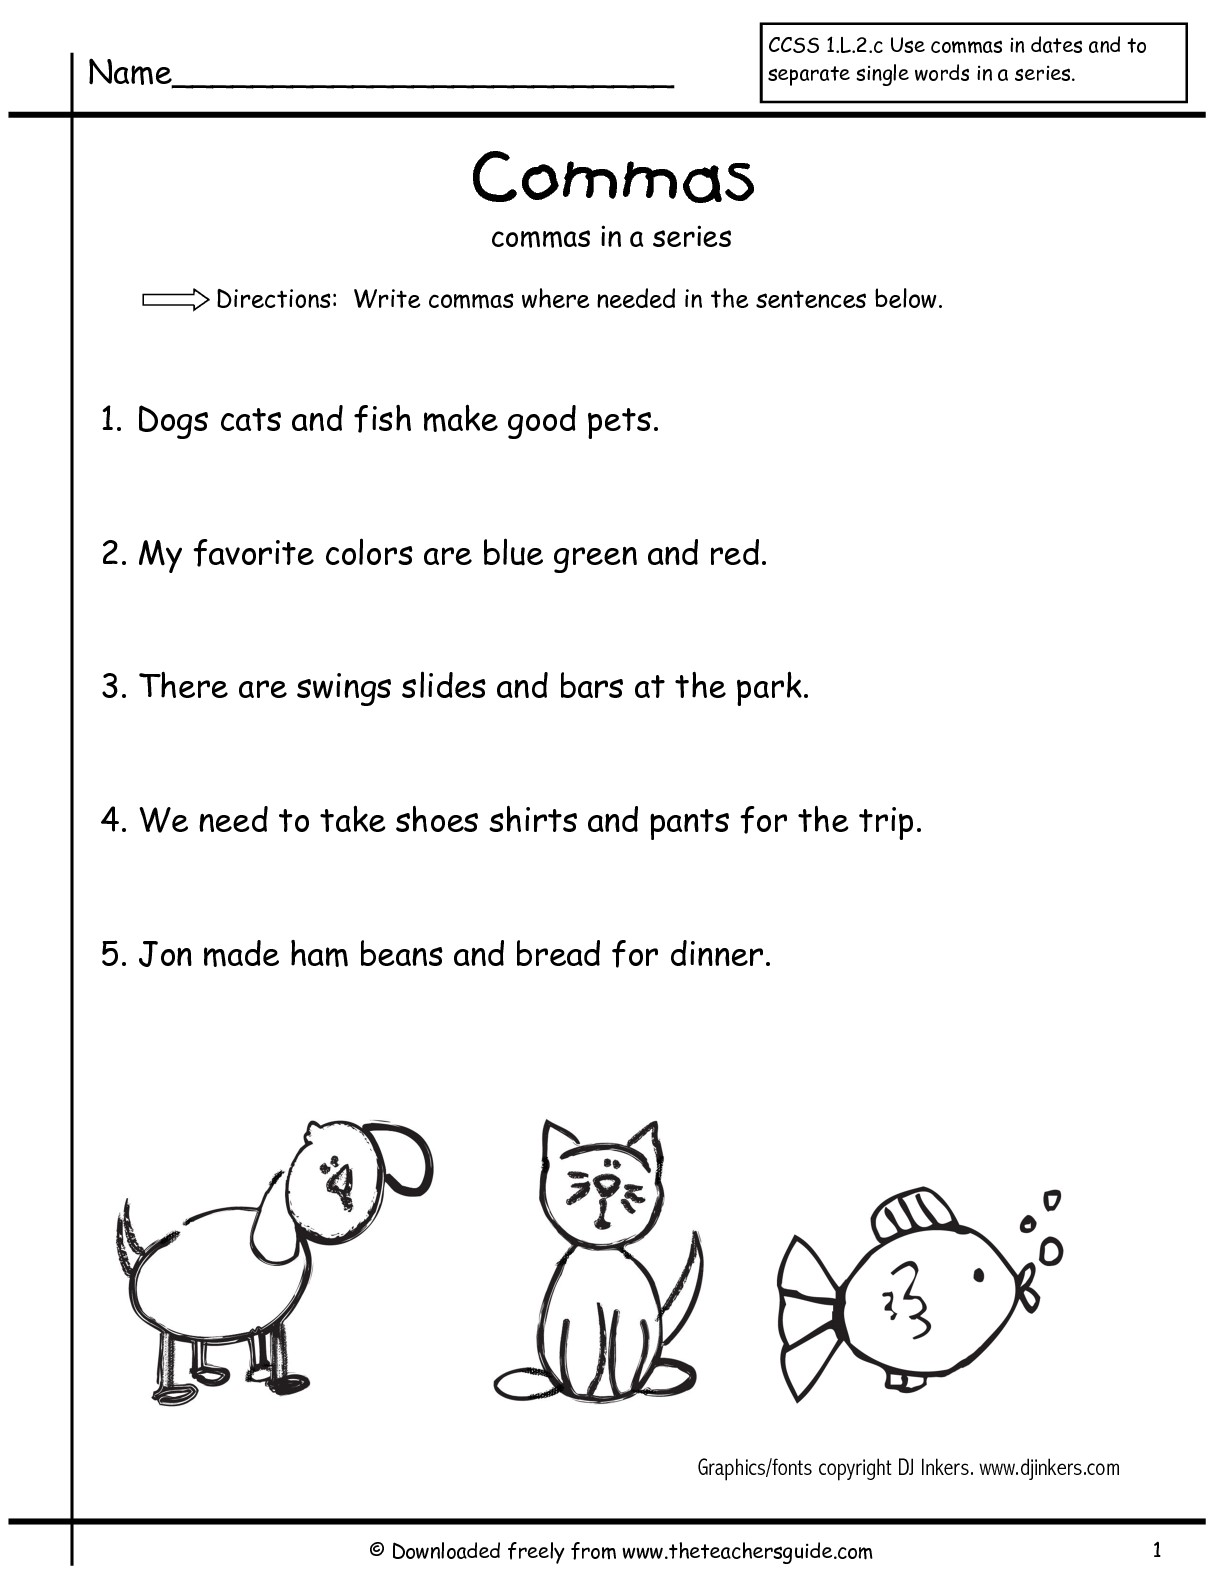 17 Best Images Of Comma Practice Worksheets